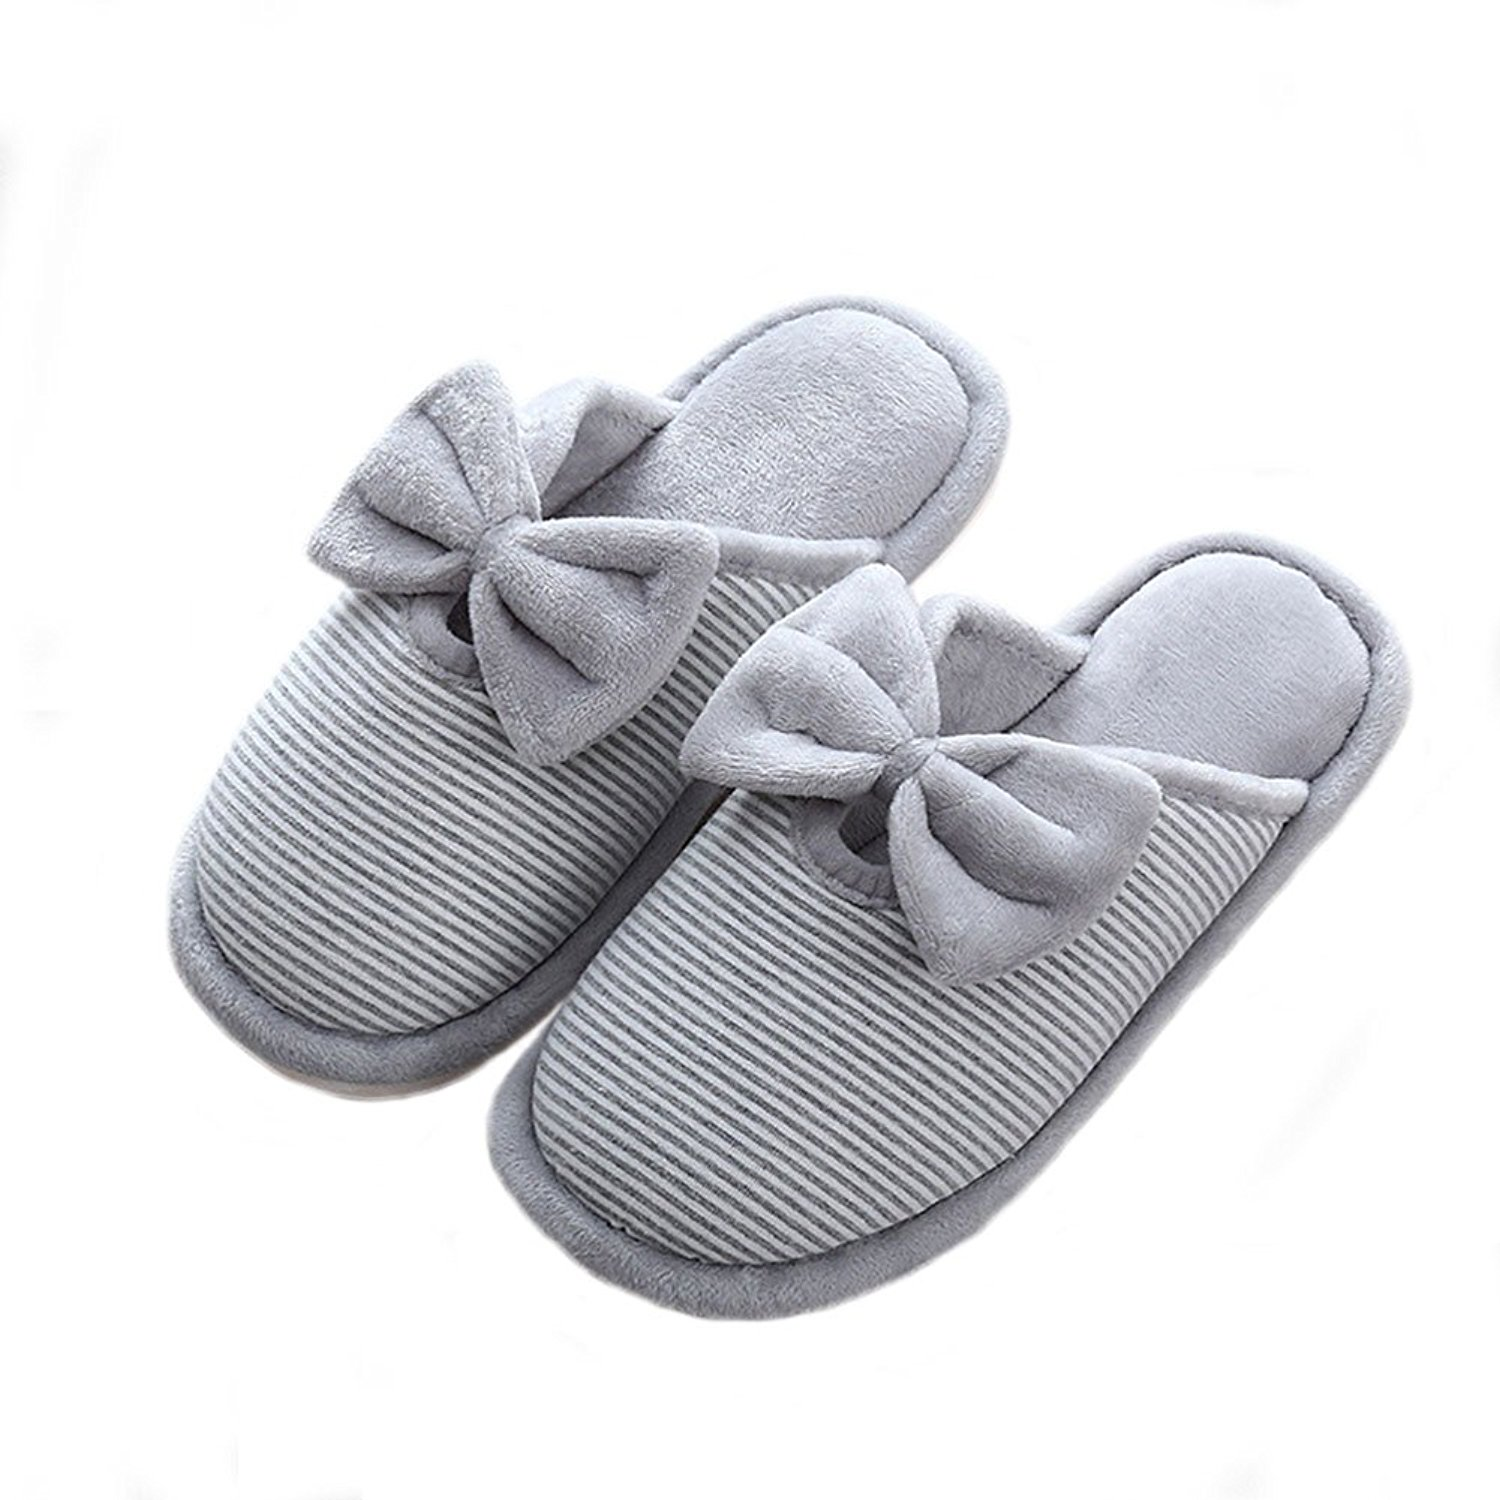 Liangcheng Winter Women's Lovely Bowknot Home Cotton Slipper Men's Indoor Cozy Warm Indoor Slipper